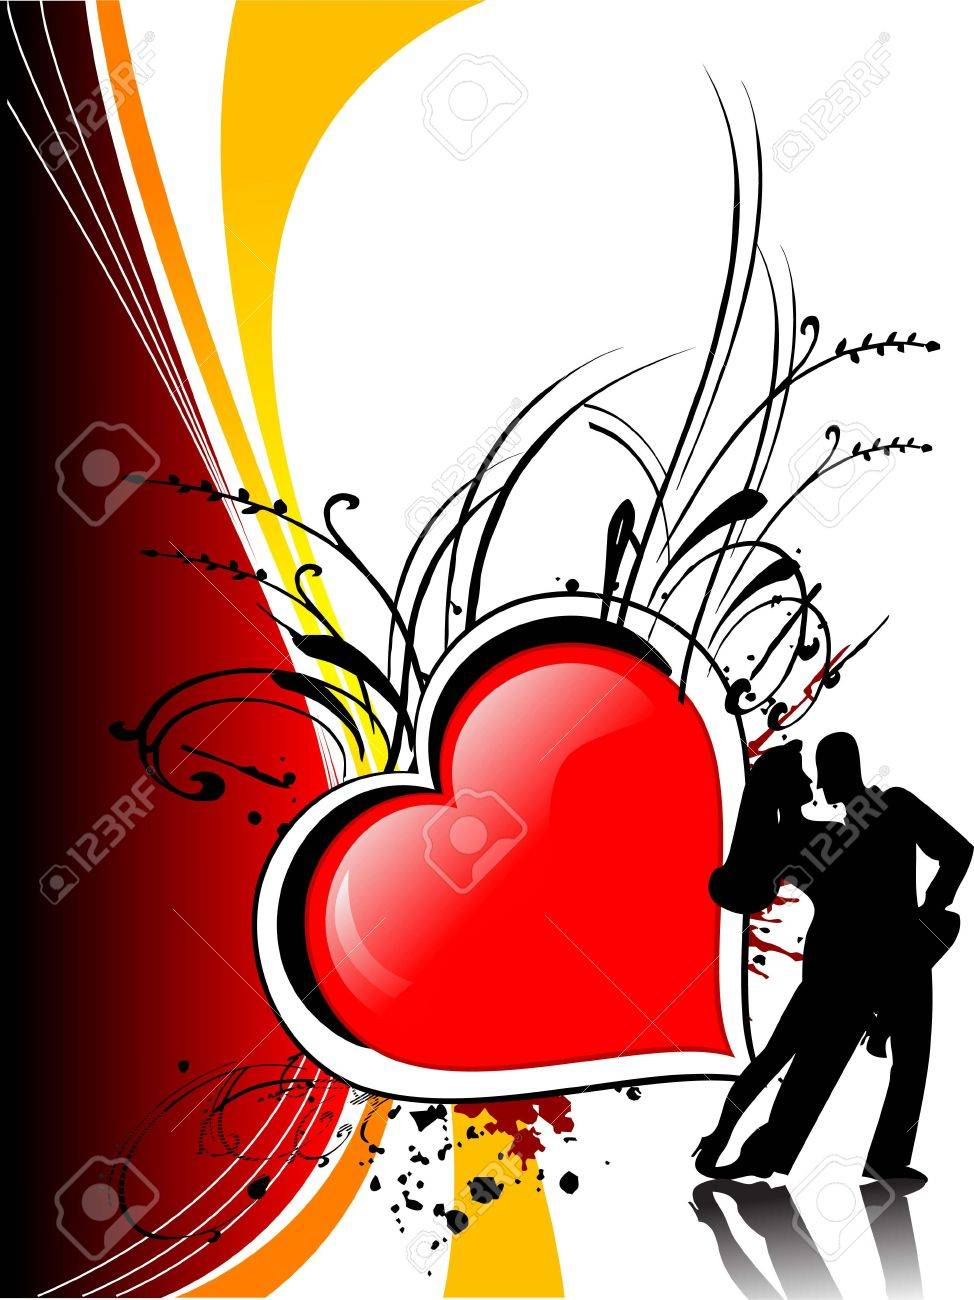 couple dancing on heart background Stock Photo - 3300733